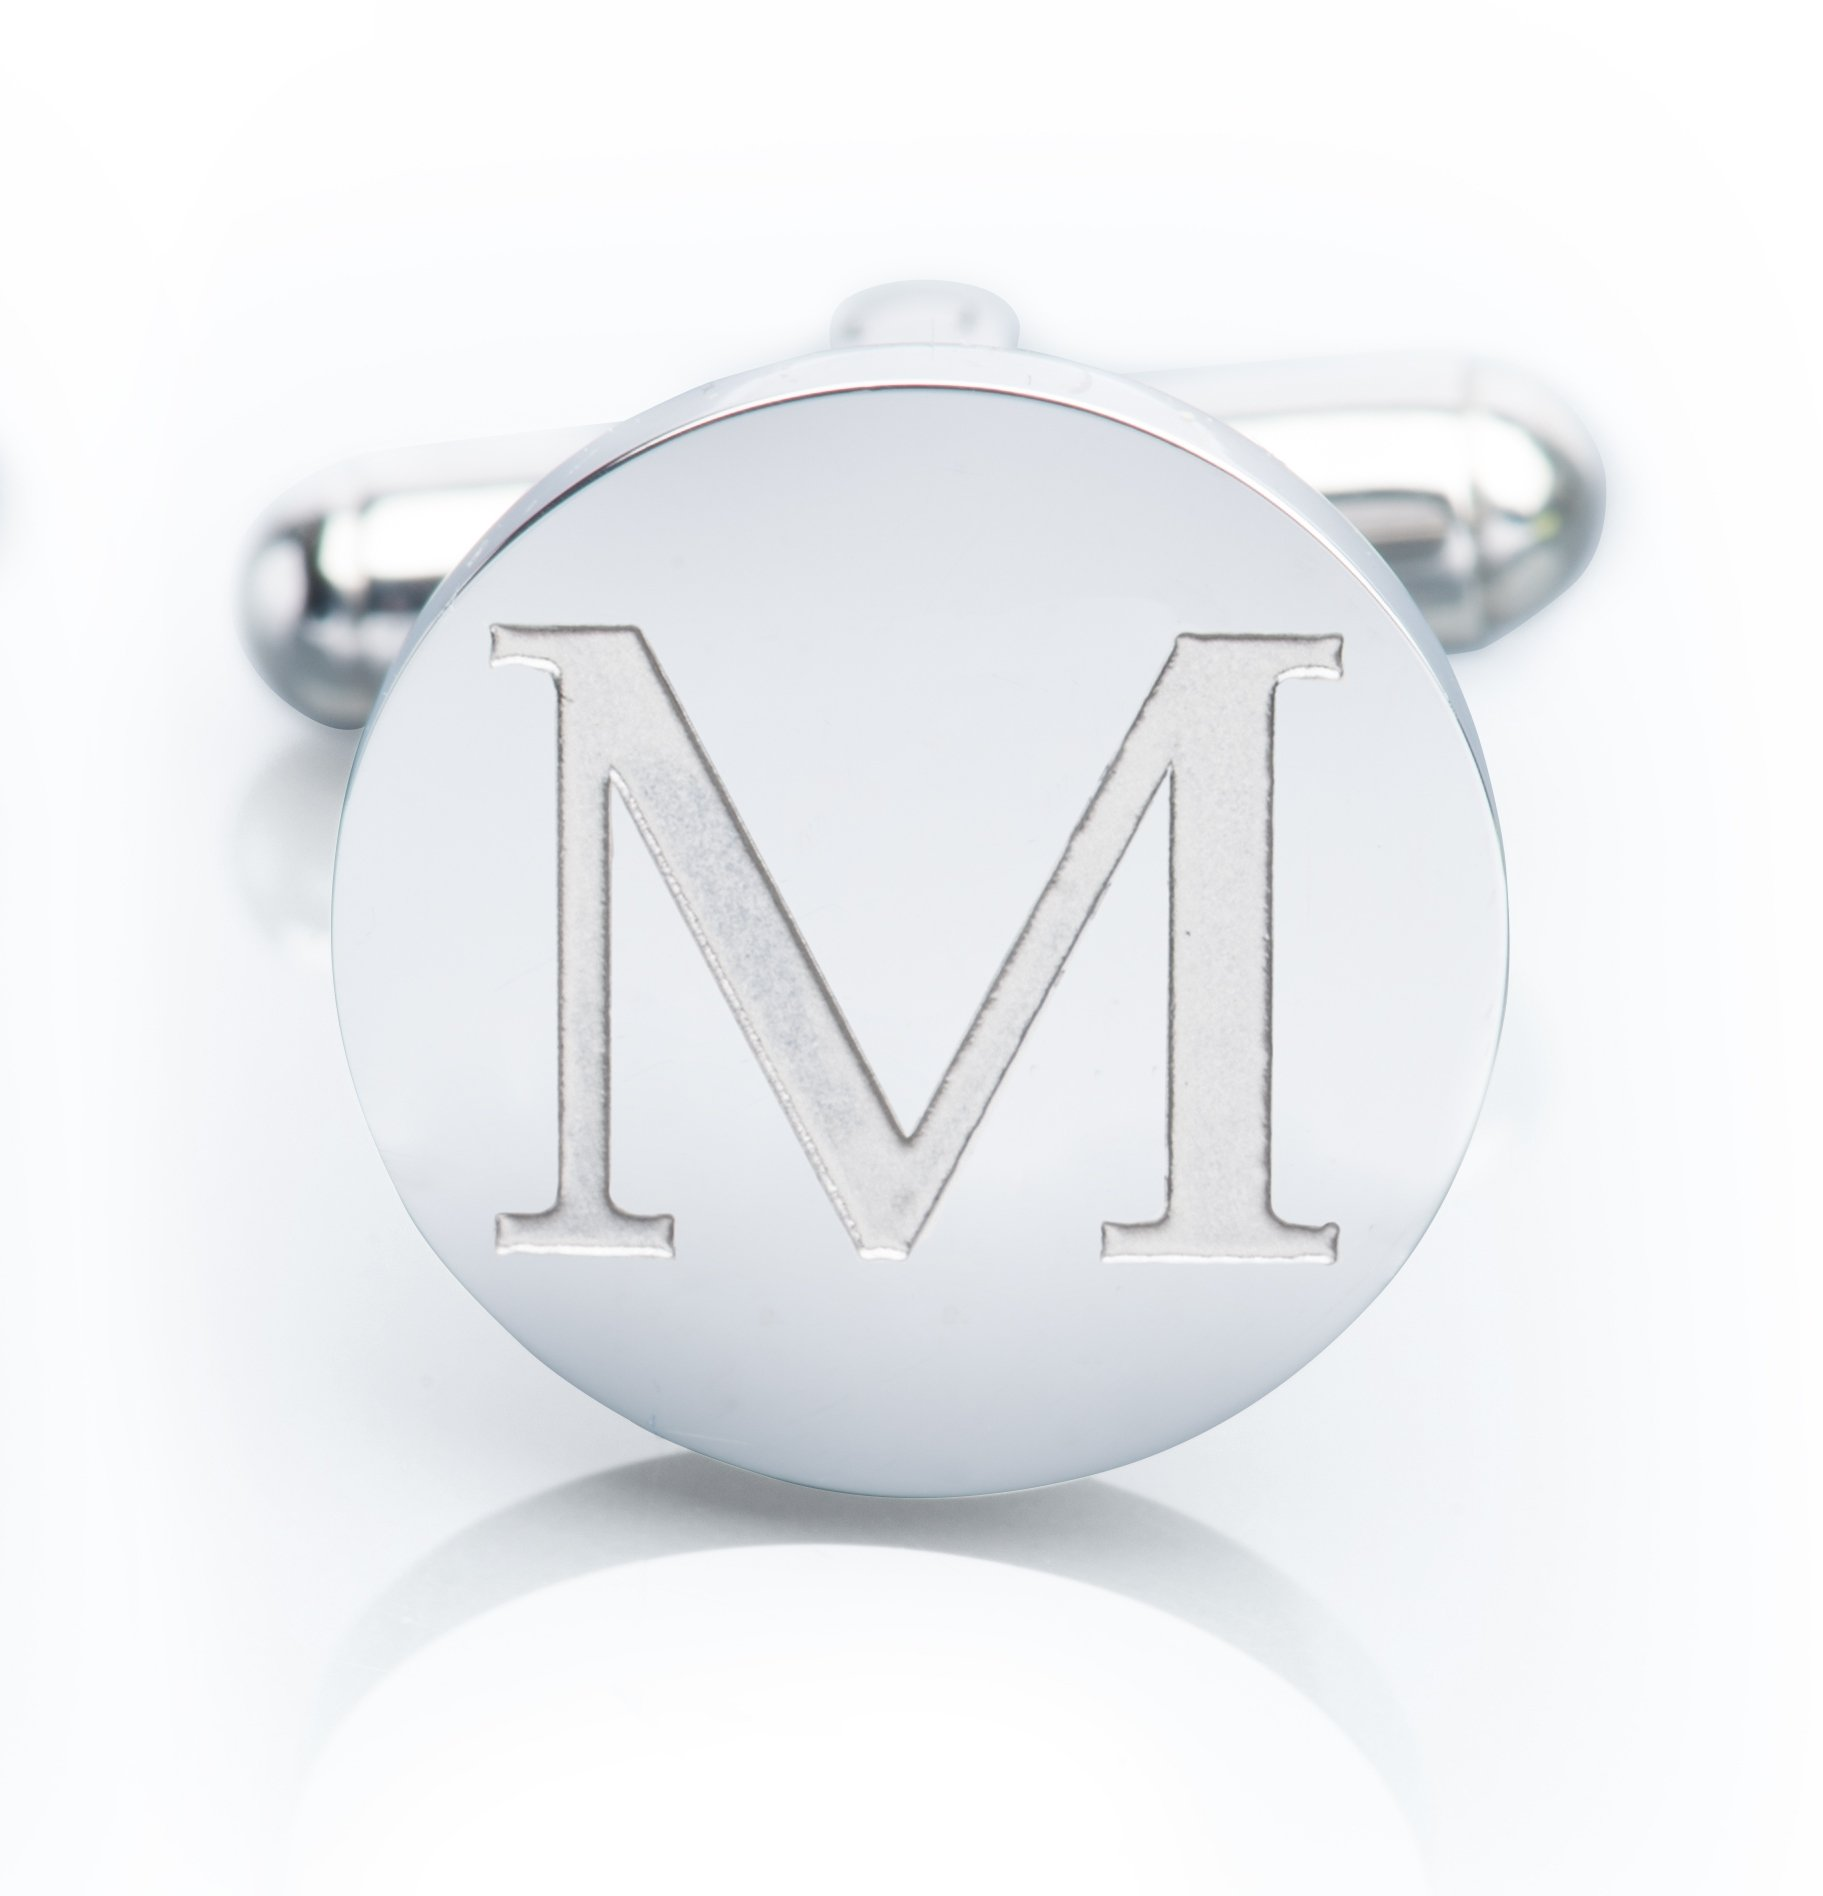 Men's 18K White Gold-Plated Engraved Initial Cufflinks with Gift Box– Premium Quality Personalized Alphabet Letter (M - White Gold) by Iron & Oak (Image #3)